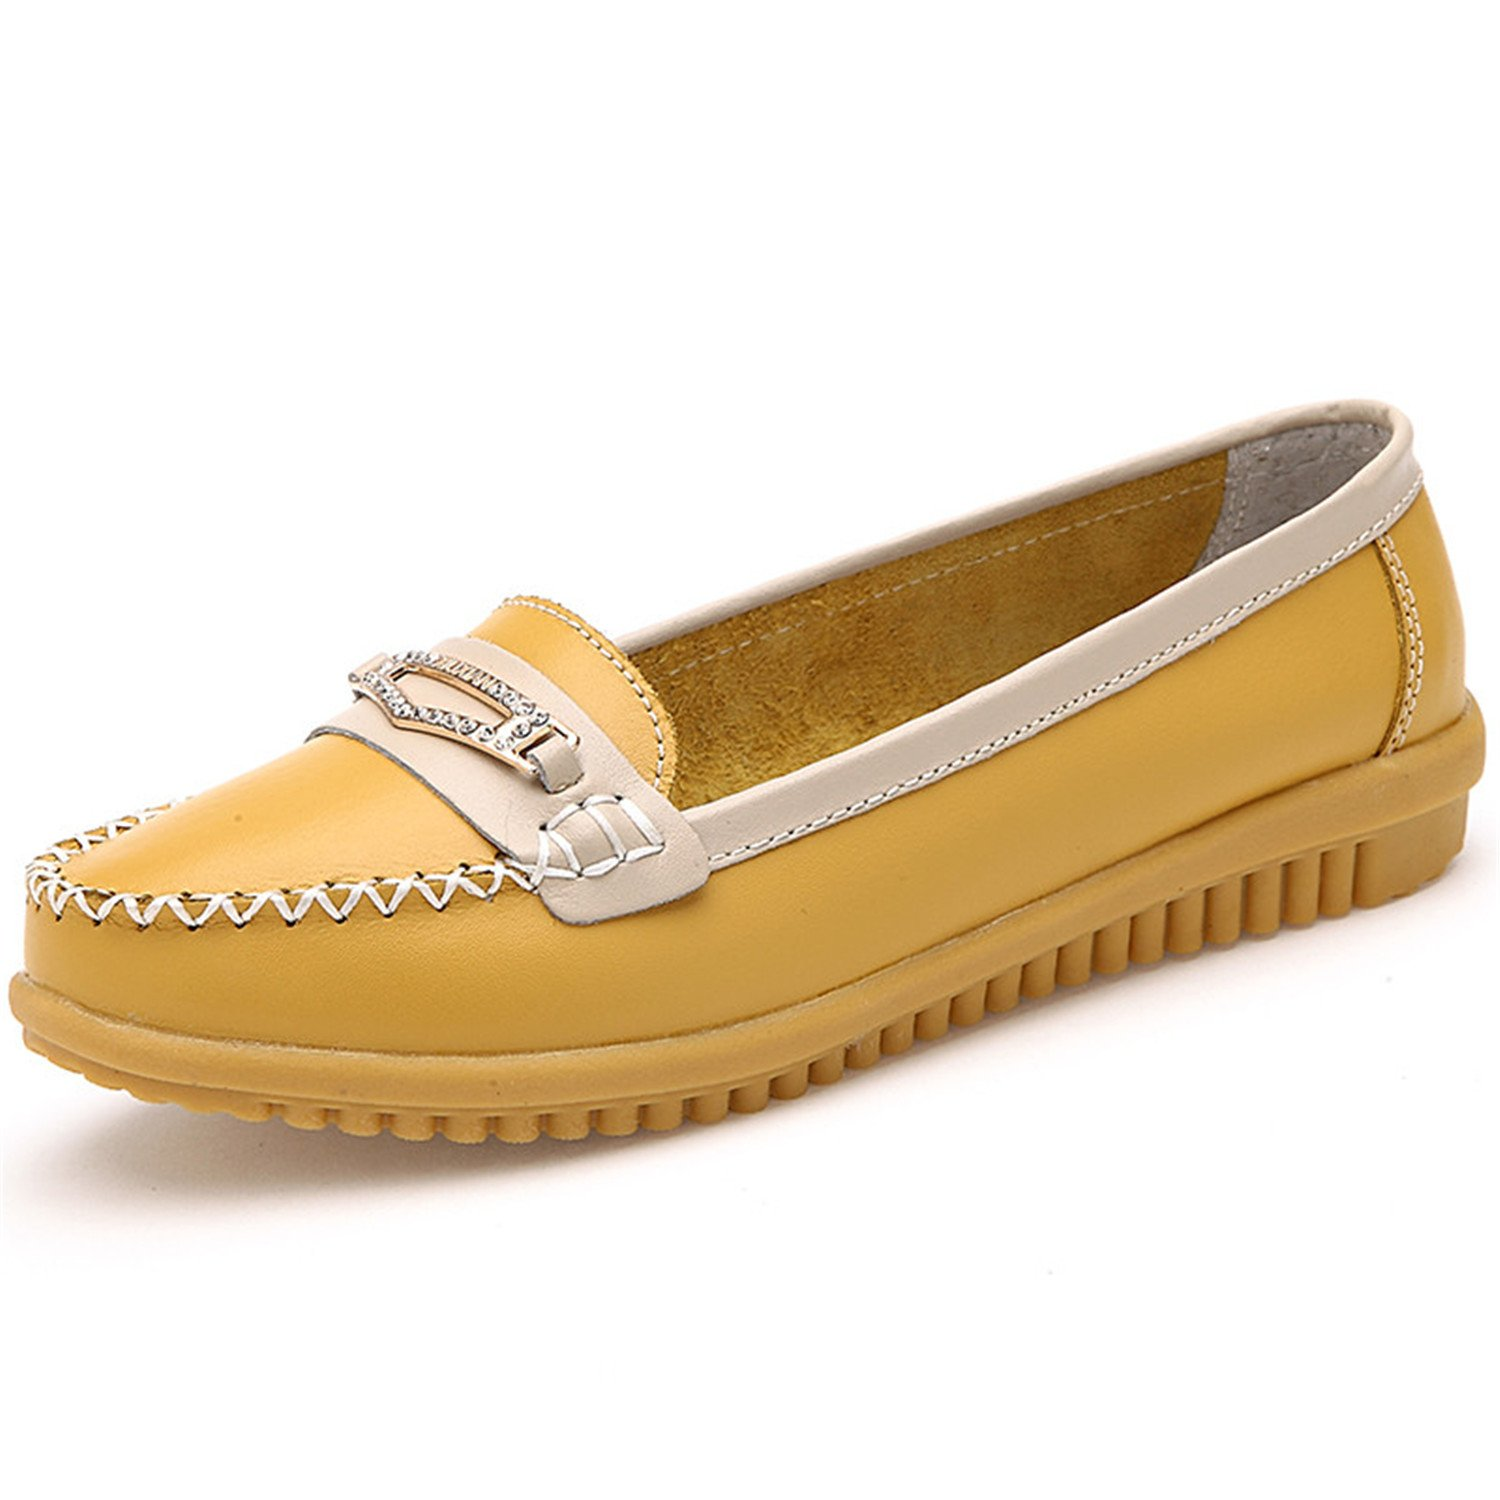 Women Loafers Non-Slip Mother Shoes Women Ballet Flats Shoes Woman Slip-On Shoes